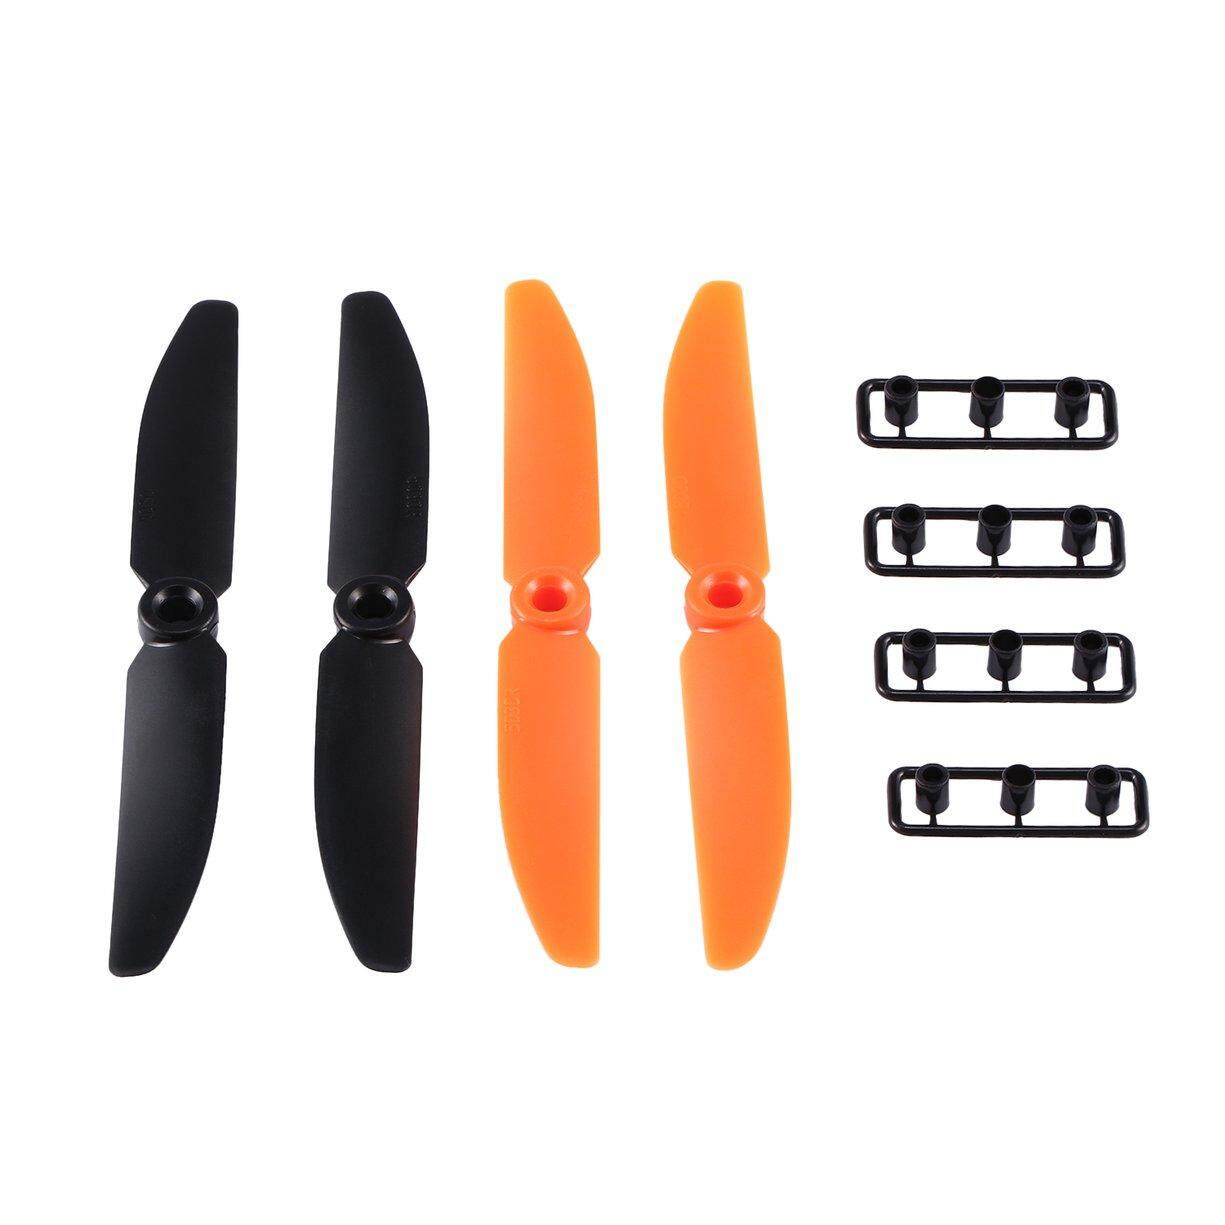 Best Sales 2 Pairs Rc Plane Part 5030 Propeller 2-Blade Props Cw/Ccw For C250 H250